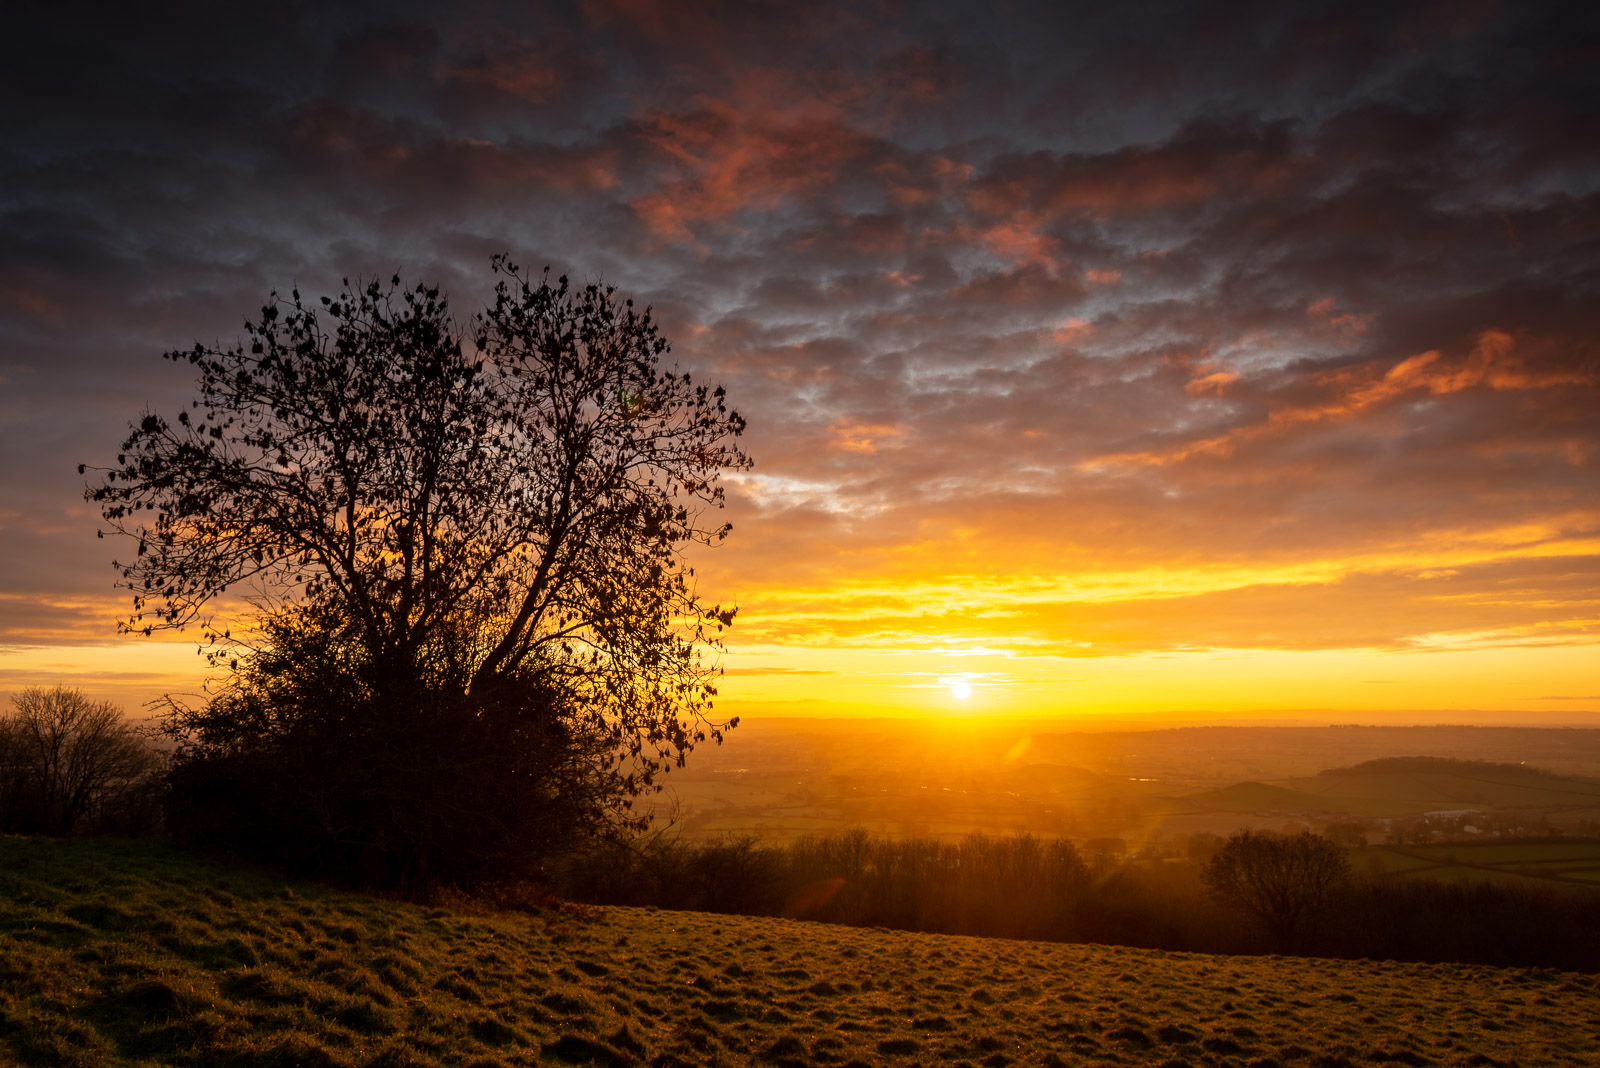 Sunset - Lynchcombe, Somerset, UK. ID JB1_0210H